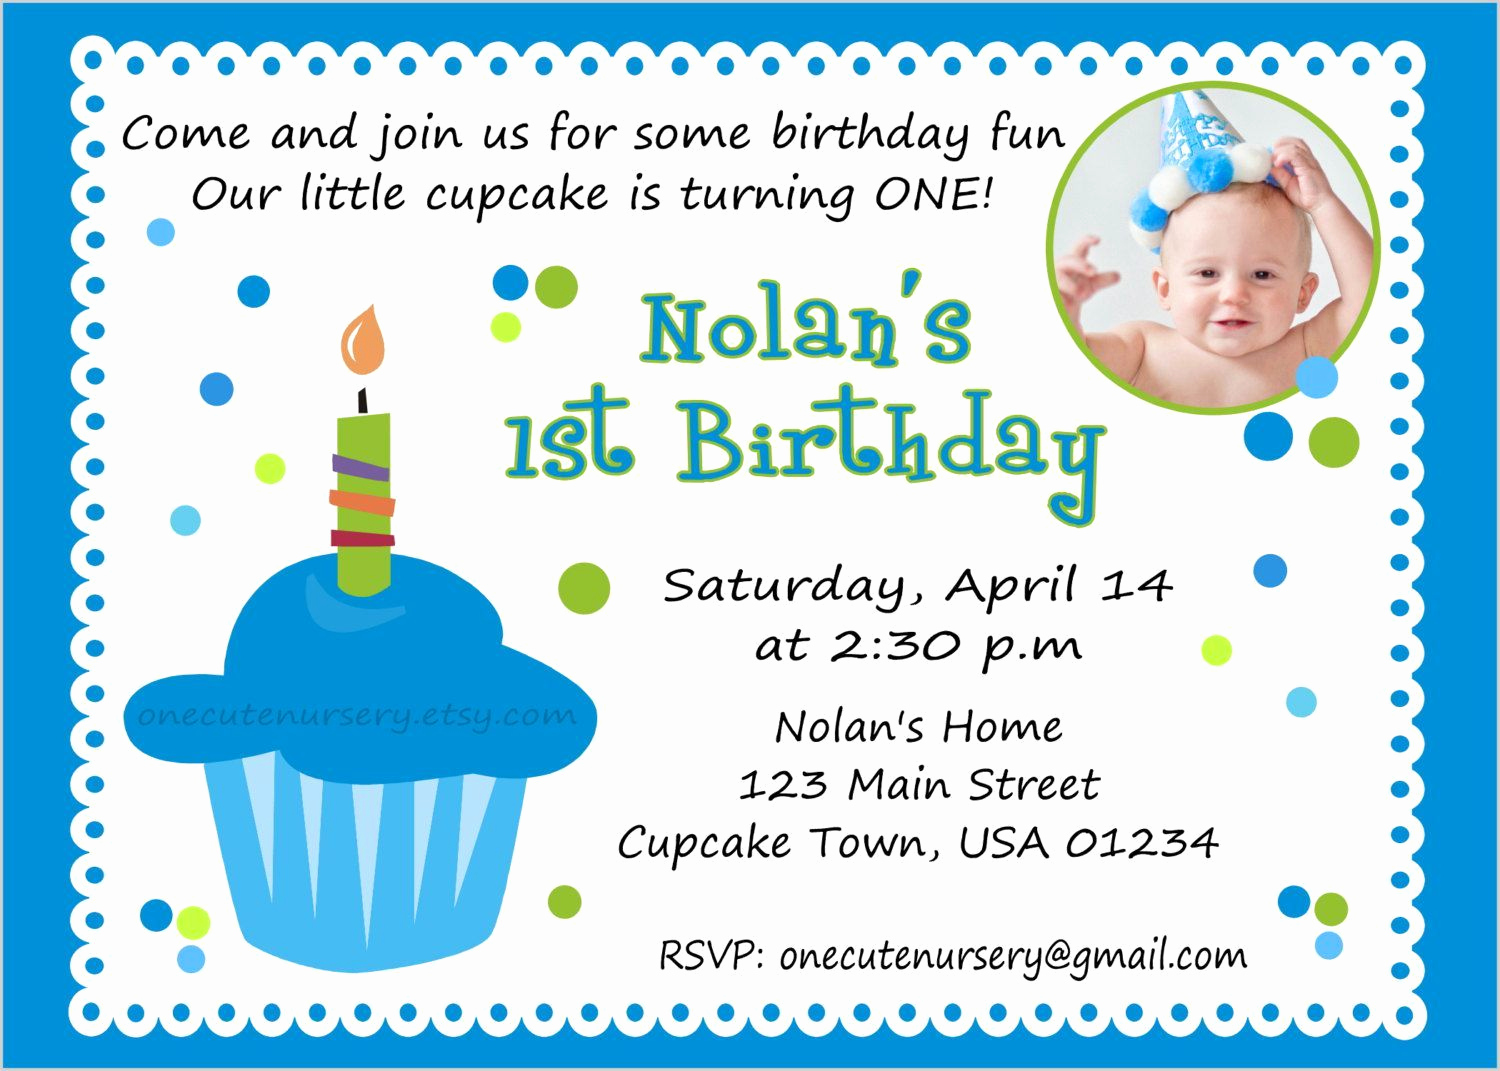 1st Birthday Invitation Ideas Fresh 7th Birthday Invitation Wording Boy